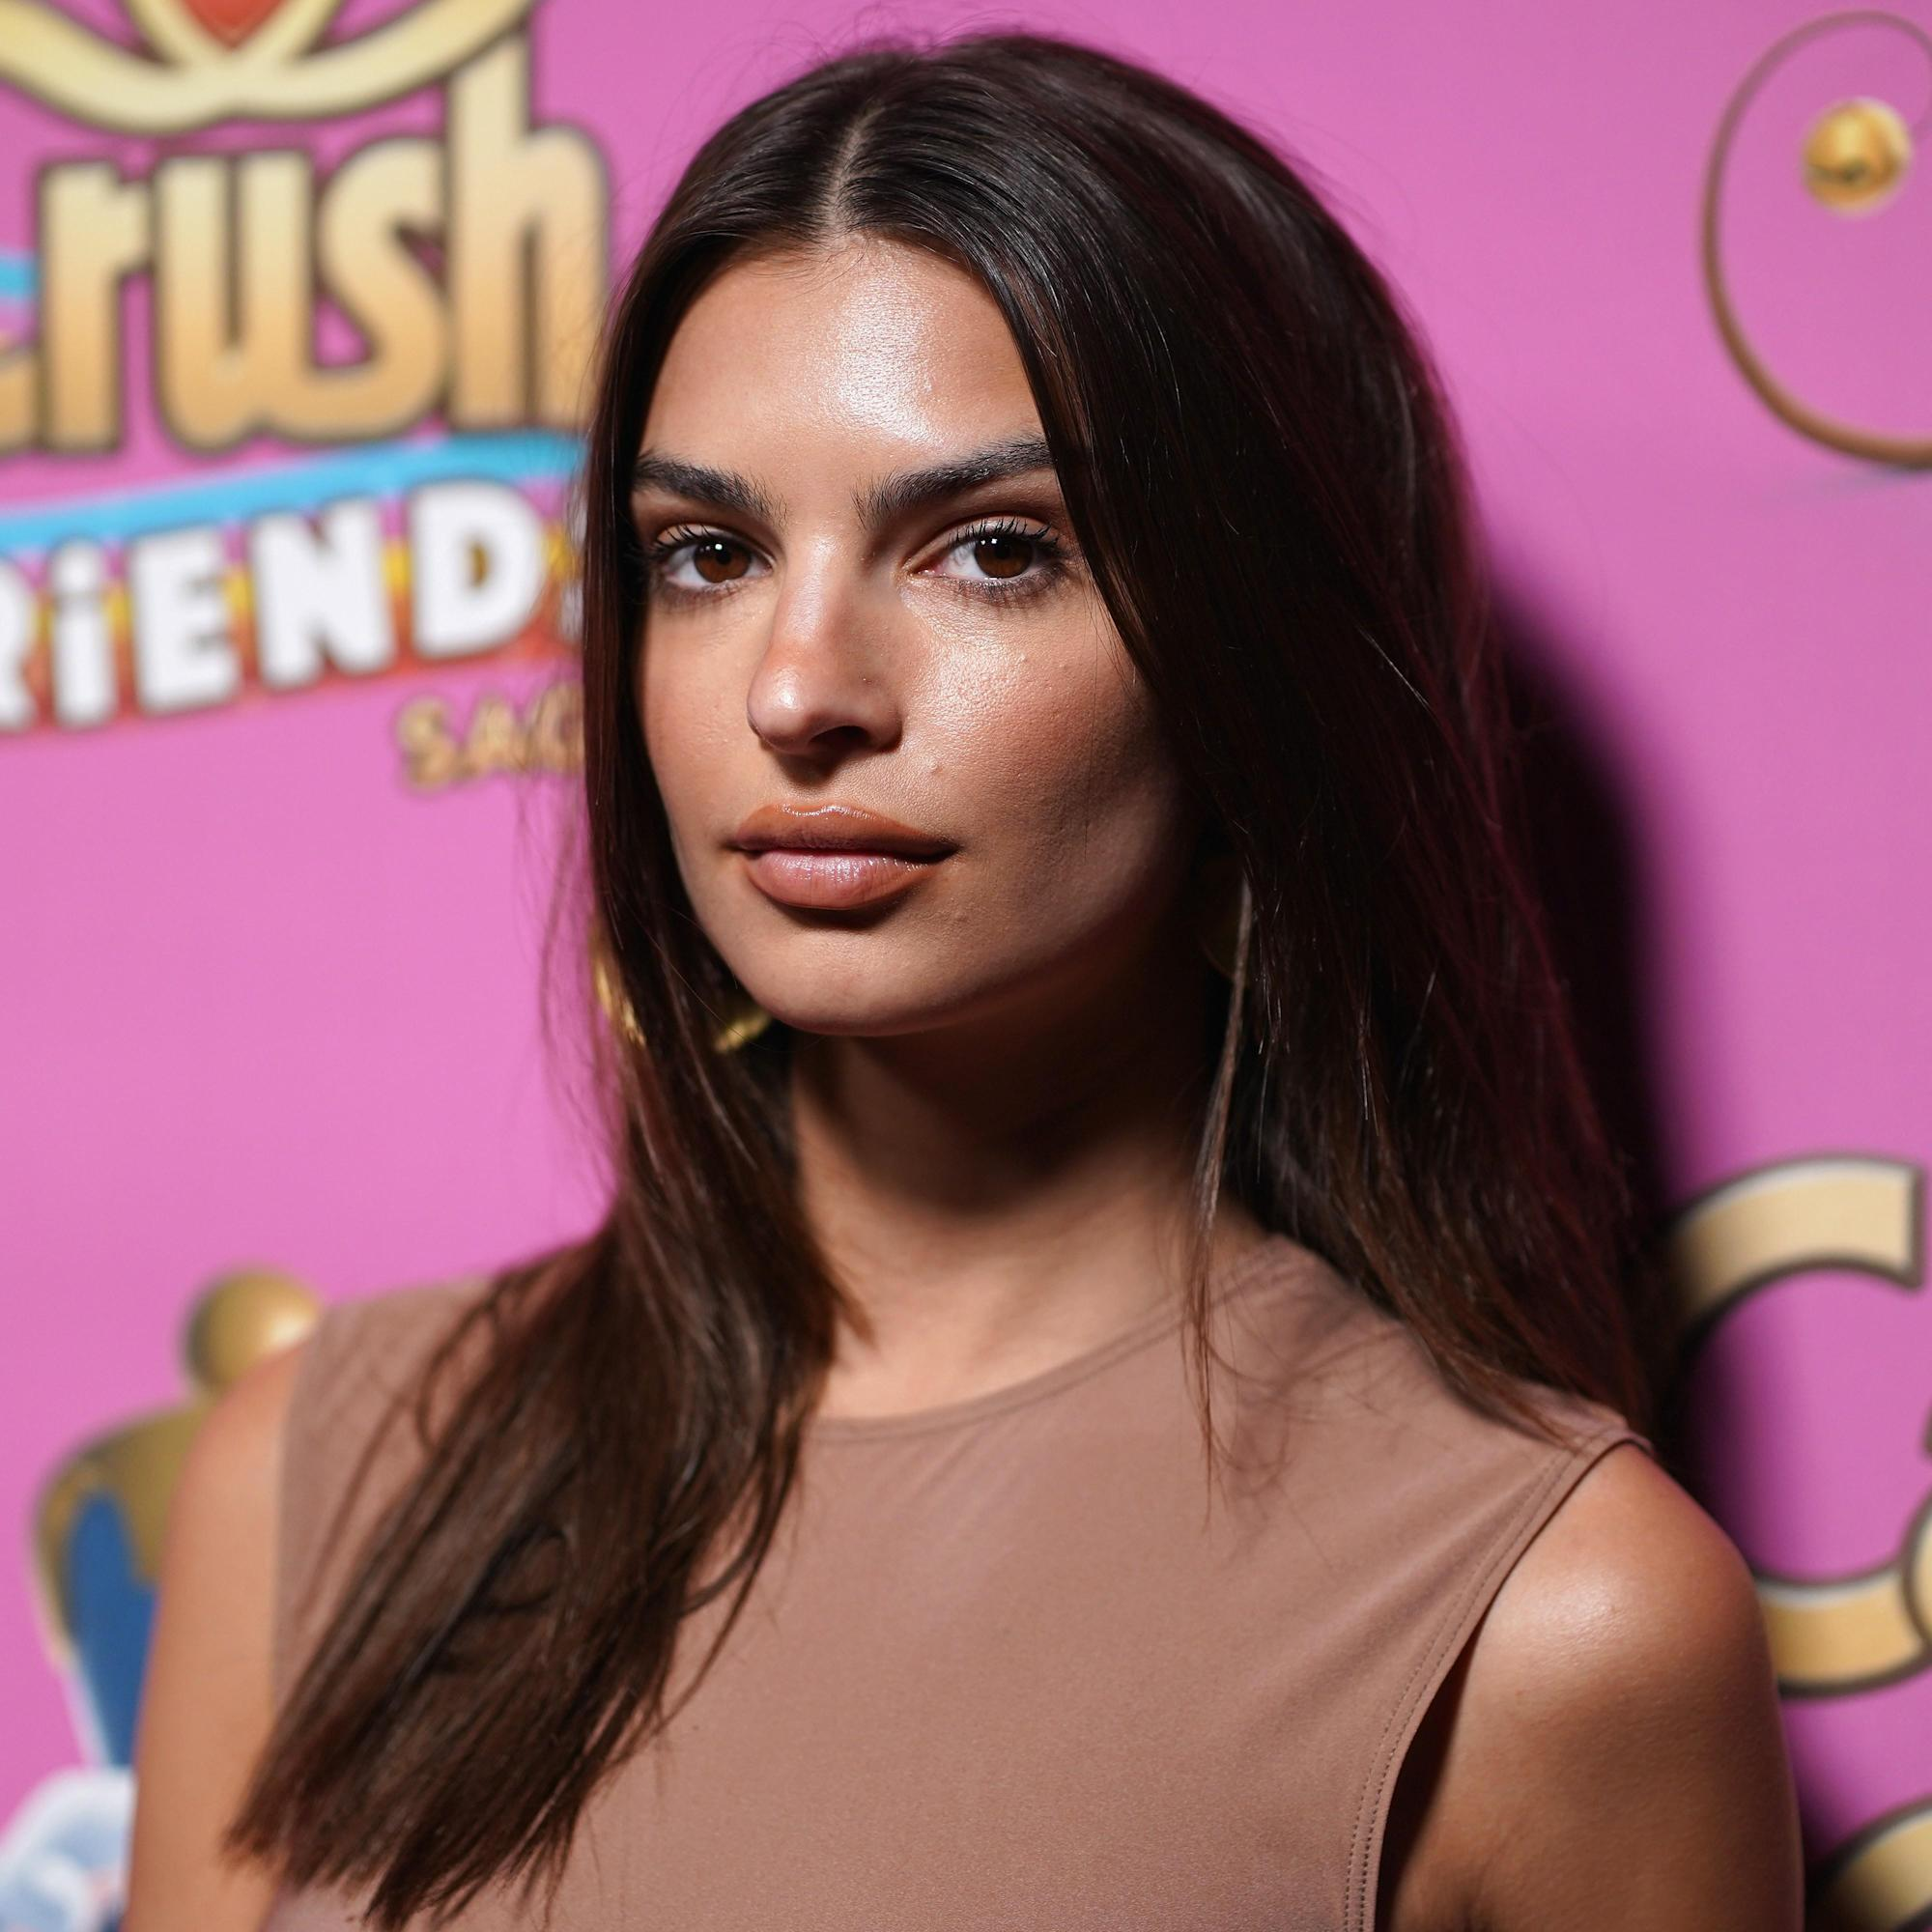 Nude photos of Emily Ratajkowski are being used without